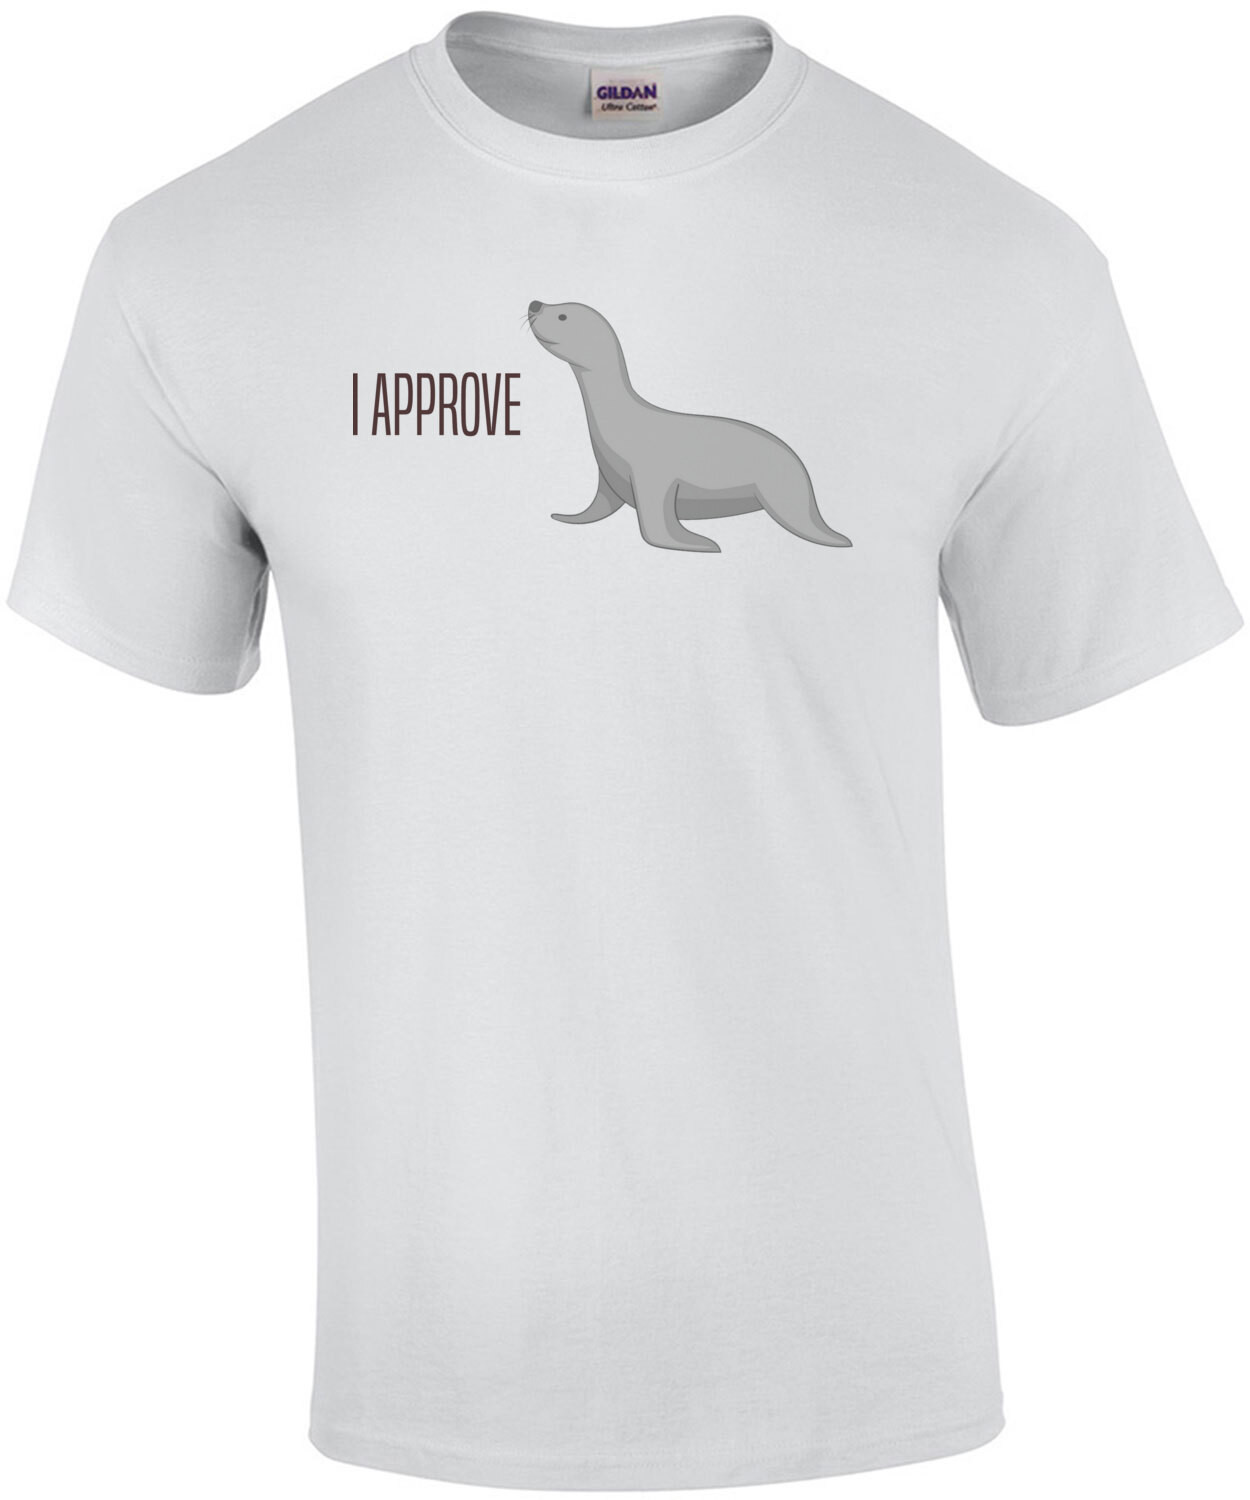 I approve - Seal of approval - funny pun - riddle t-shirt